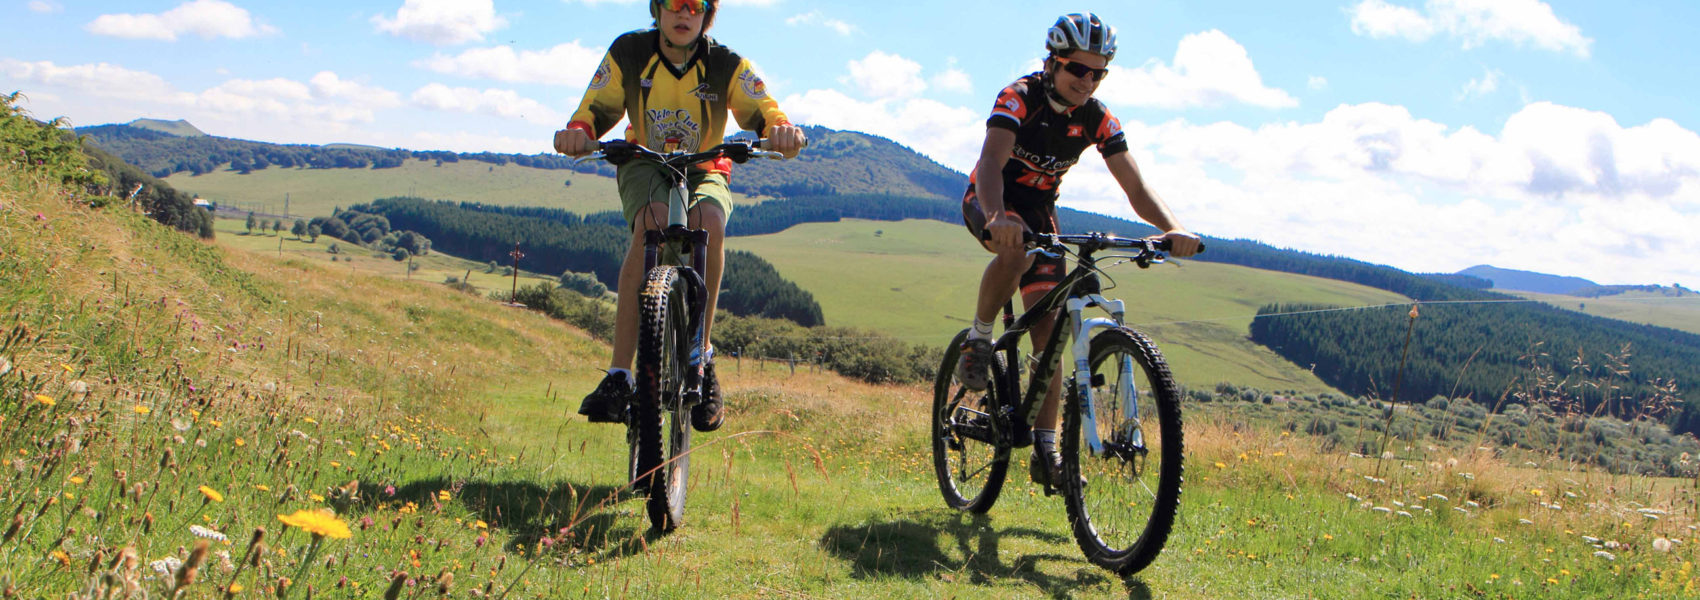 vtt sancy